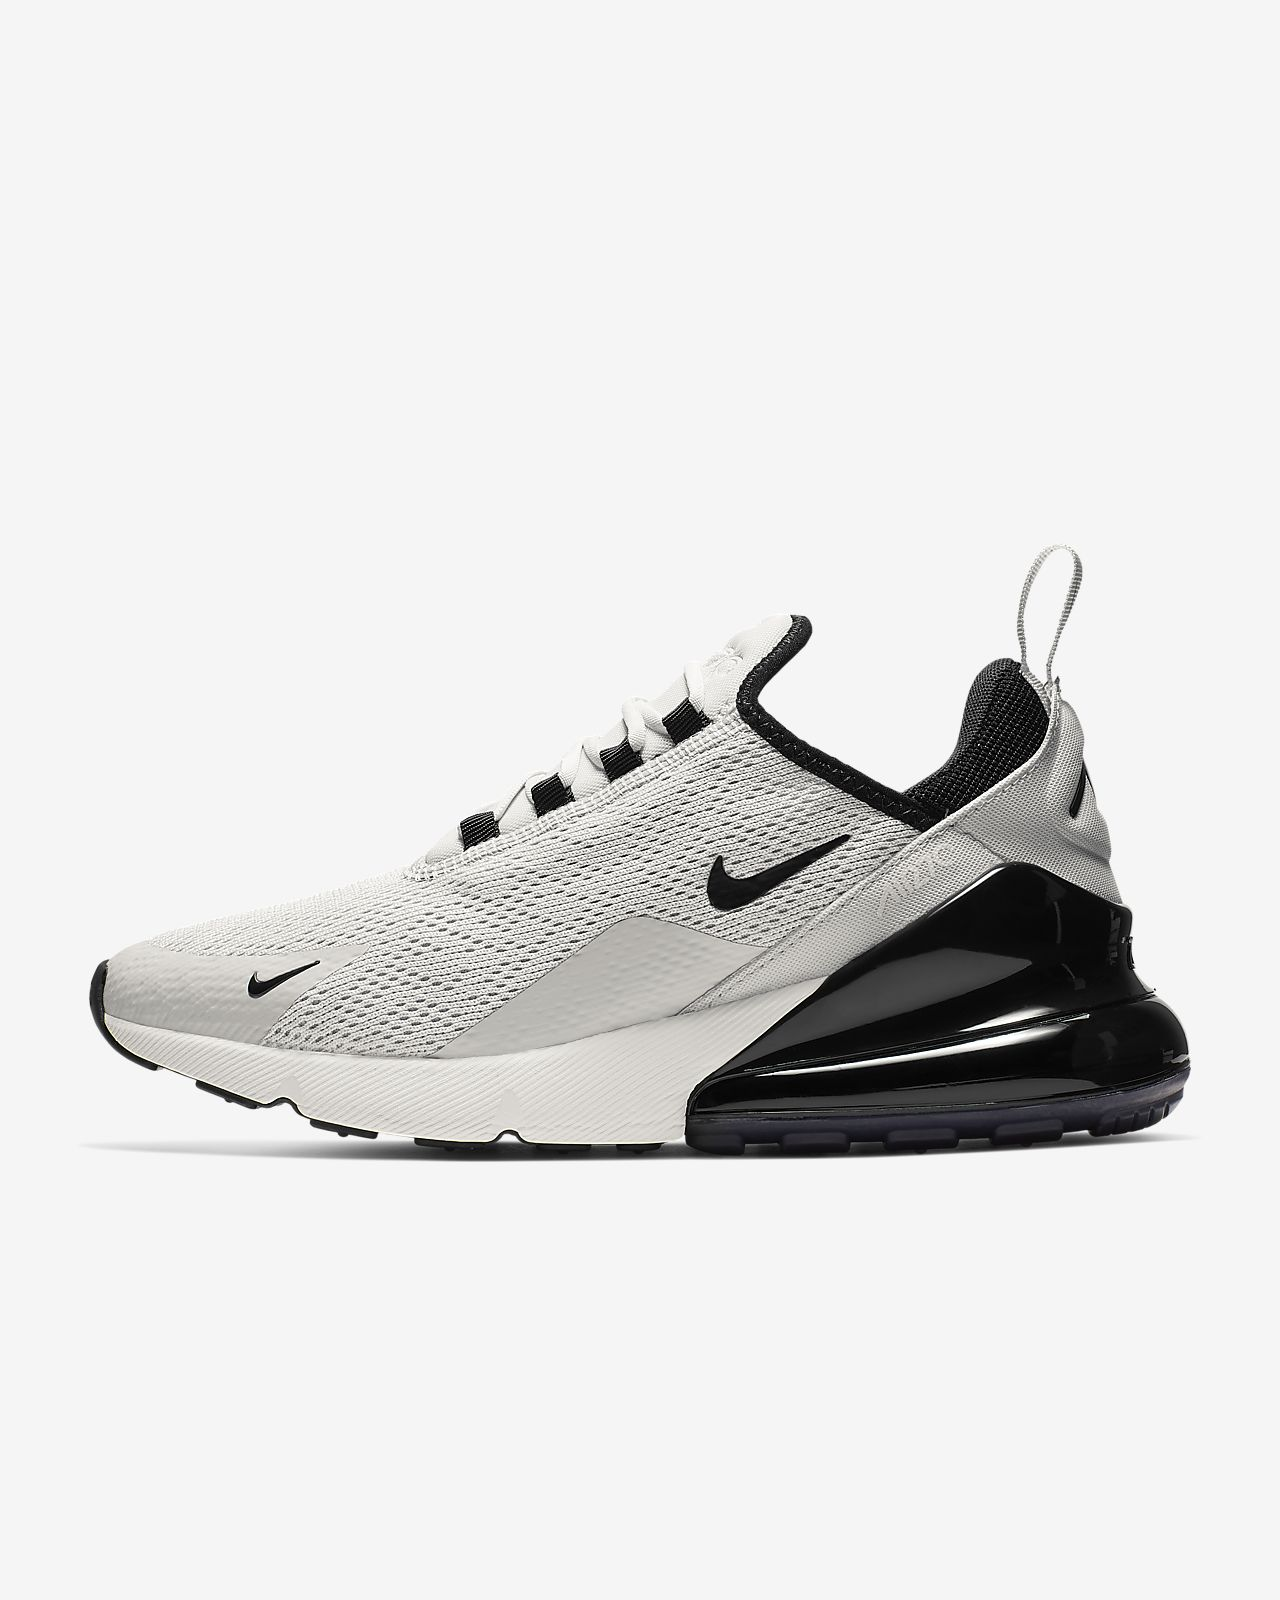 size 40 fa098 93628 Low Resolution Nike Air Max 270 Damenschuh Nike Air Max 270 Damenschuh